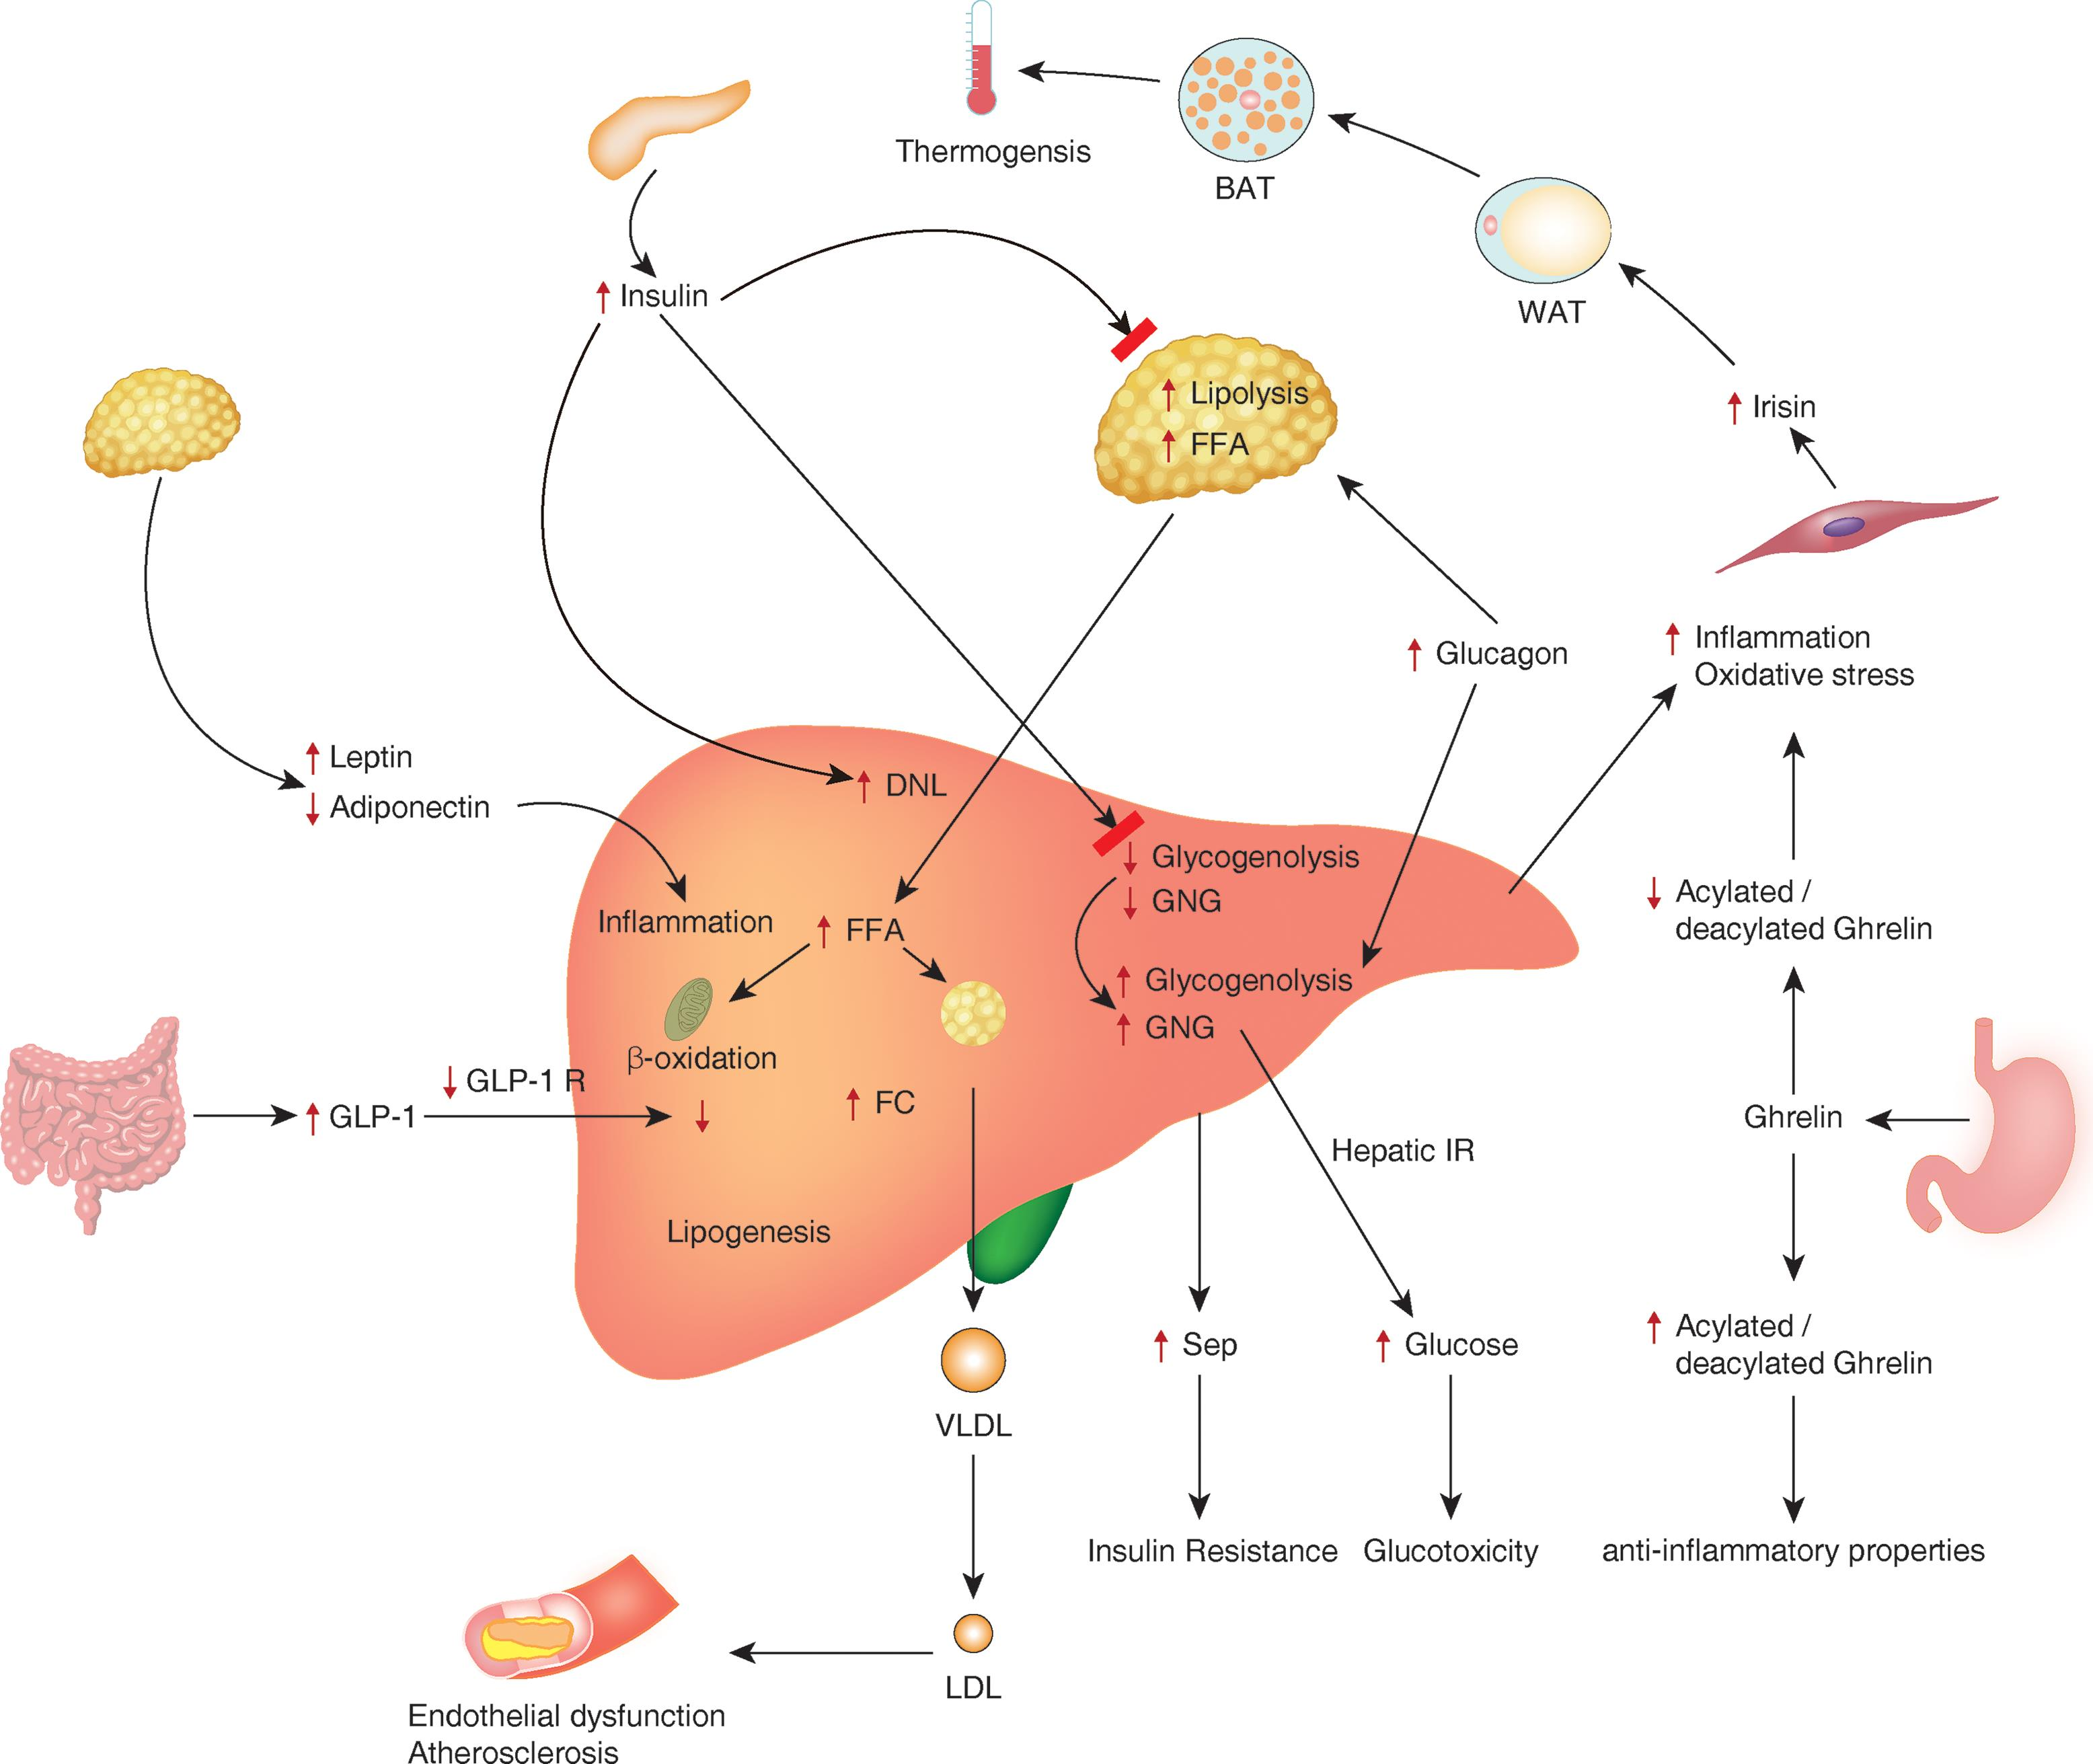 Non alcoholic fatty liver disease a clinical update pathophysiological mechanisms involved in the development and complications of nonalcoholic fatty liver disease nafld ccuart Gallery